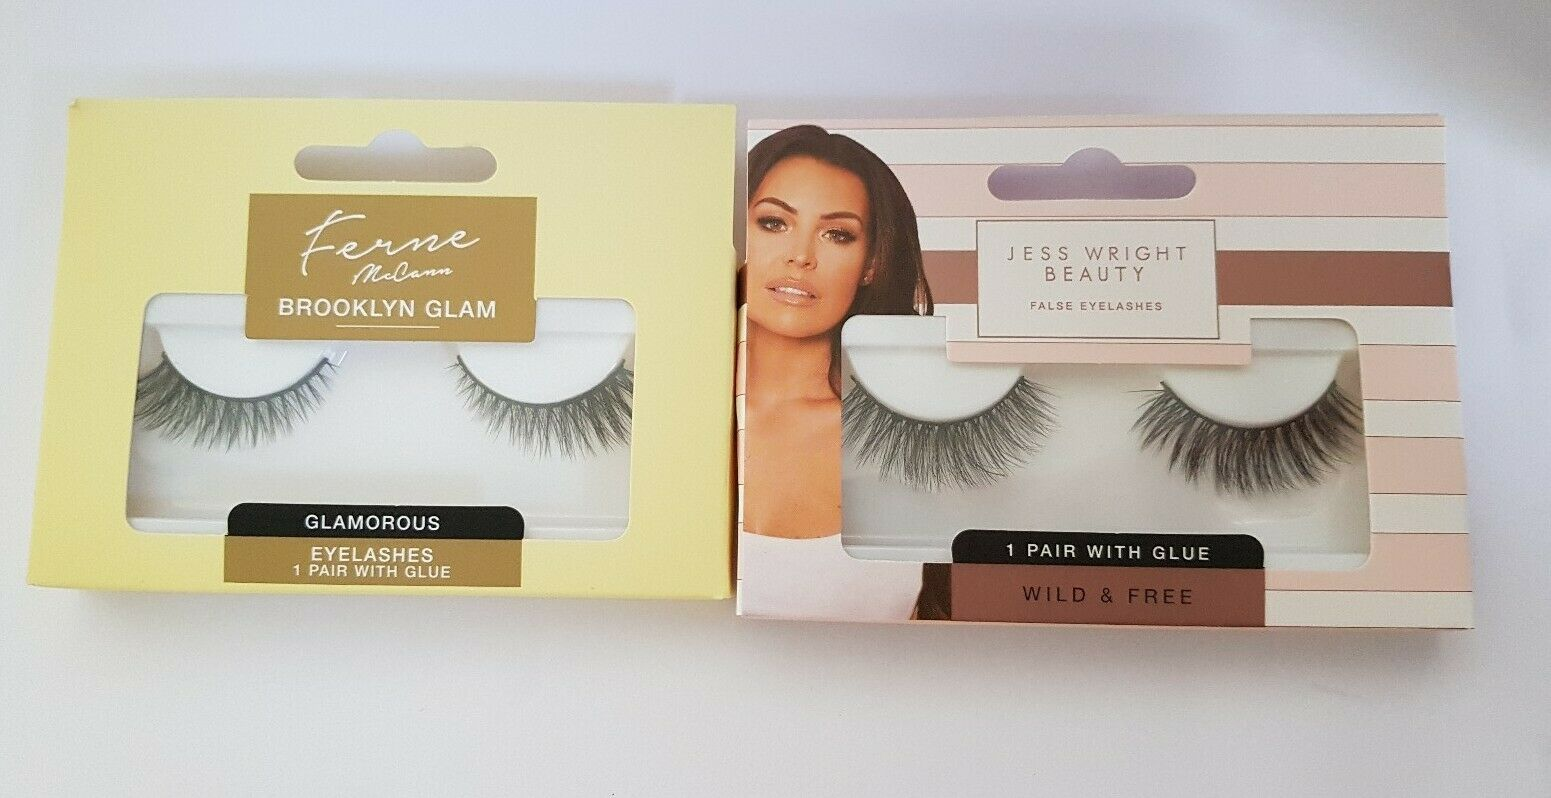 Jess Wright Beauty False Eyelashes Wild 1 Pair Glue Glam Fake Volume For Sale Online Ebay